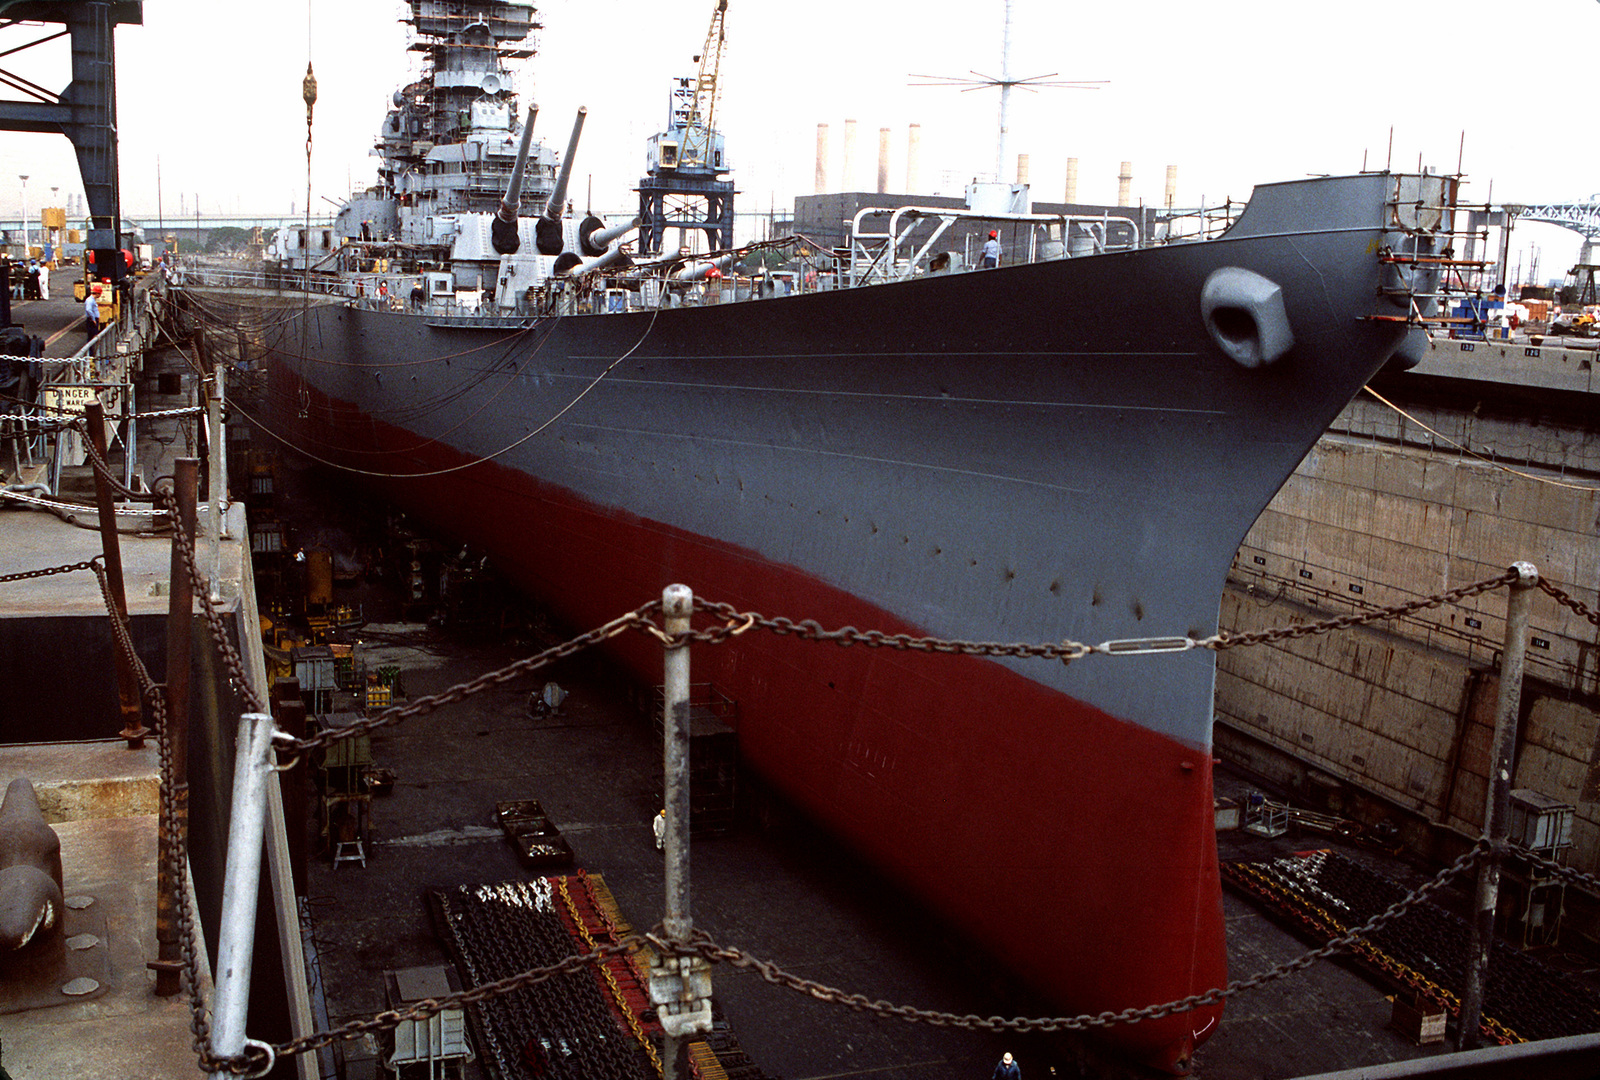 A starboard bow view of the battleship USS NEW JERSEY (BB-62) in drydock. The ship is undergoing refitting and reactivation